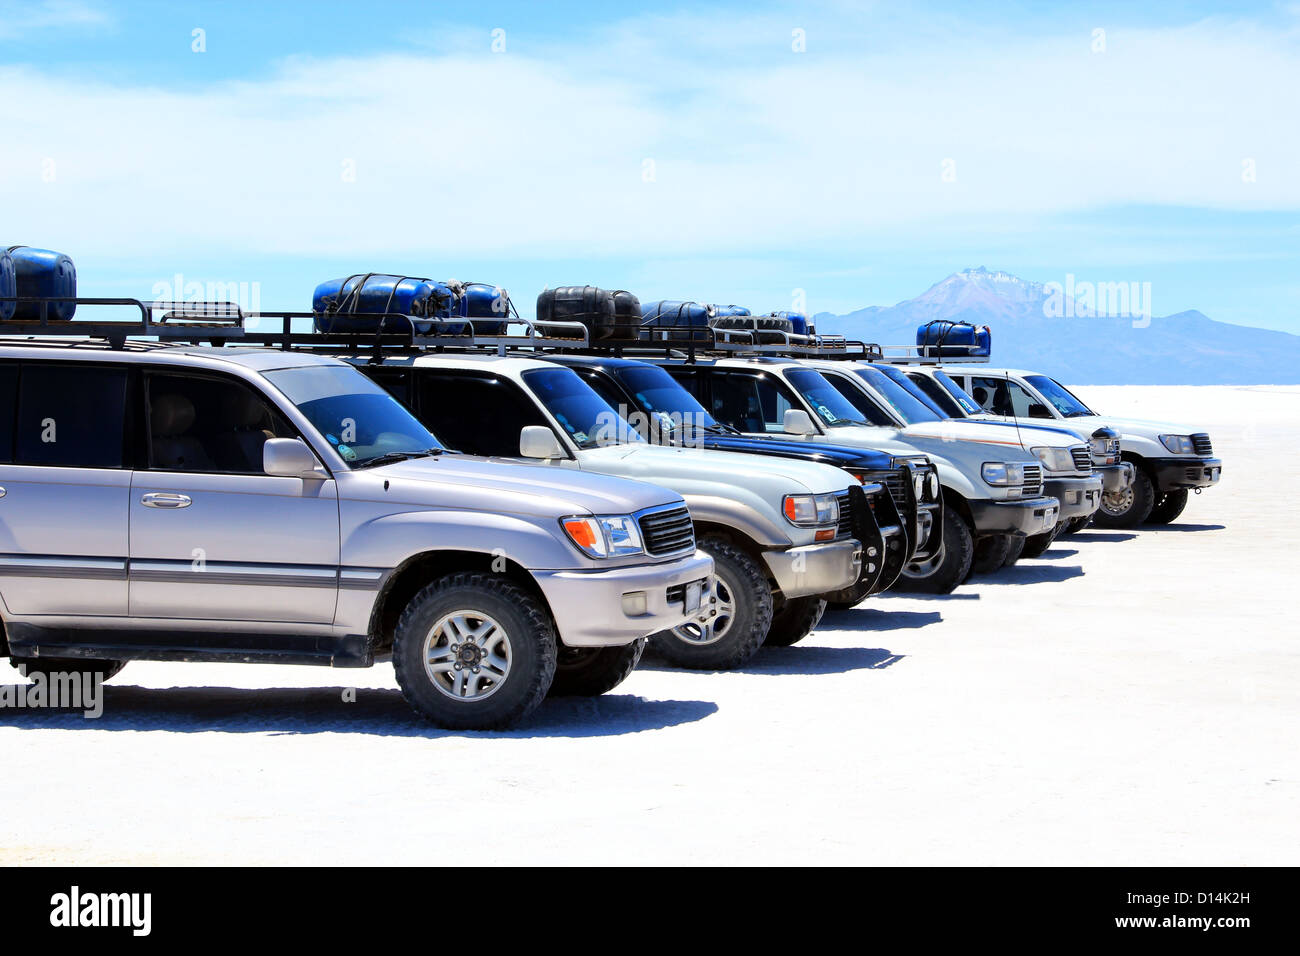 SUVs in a row in front of mountains Stock Photo